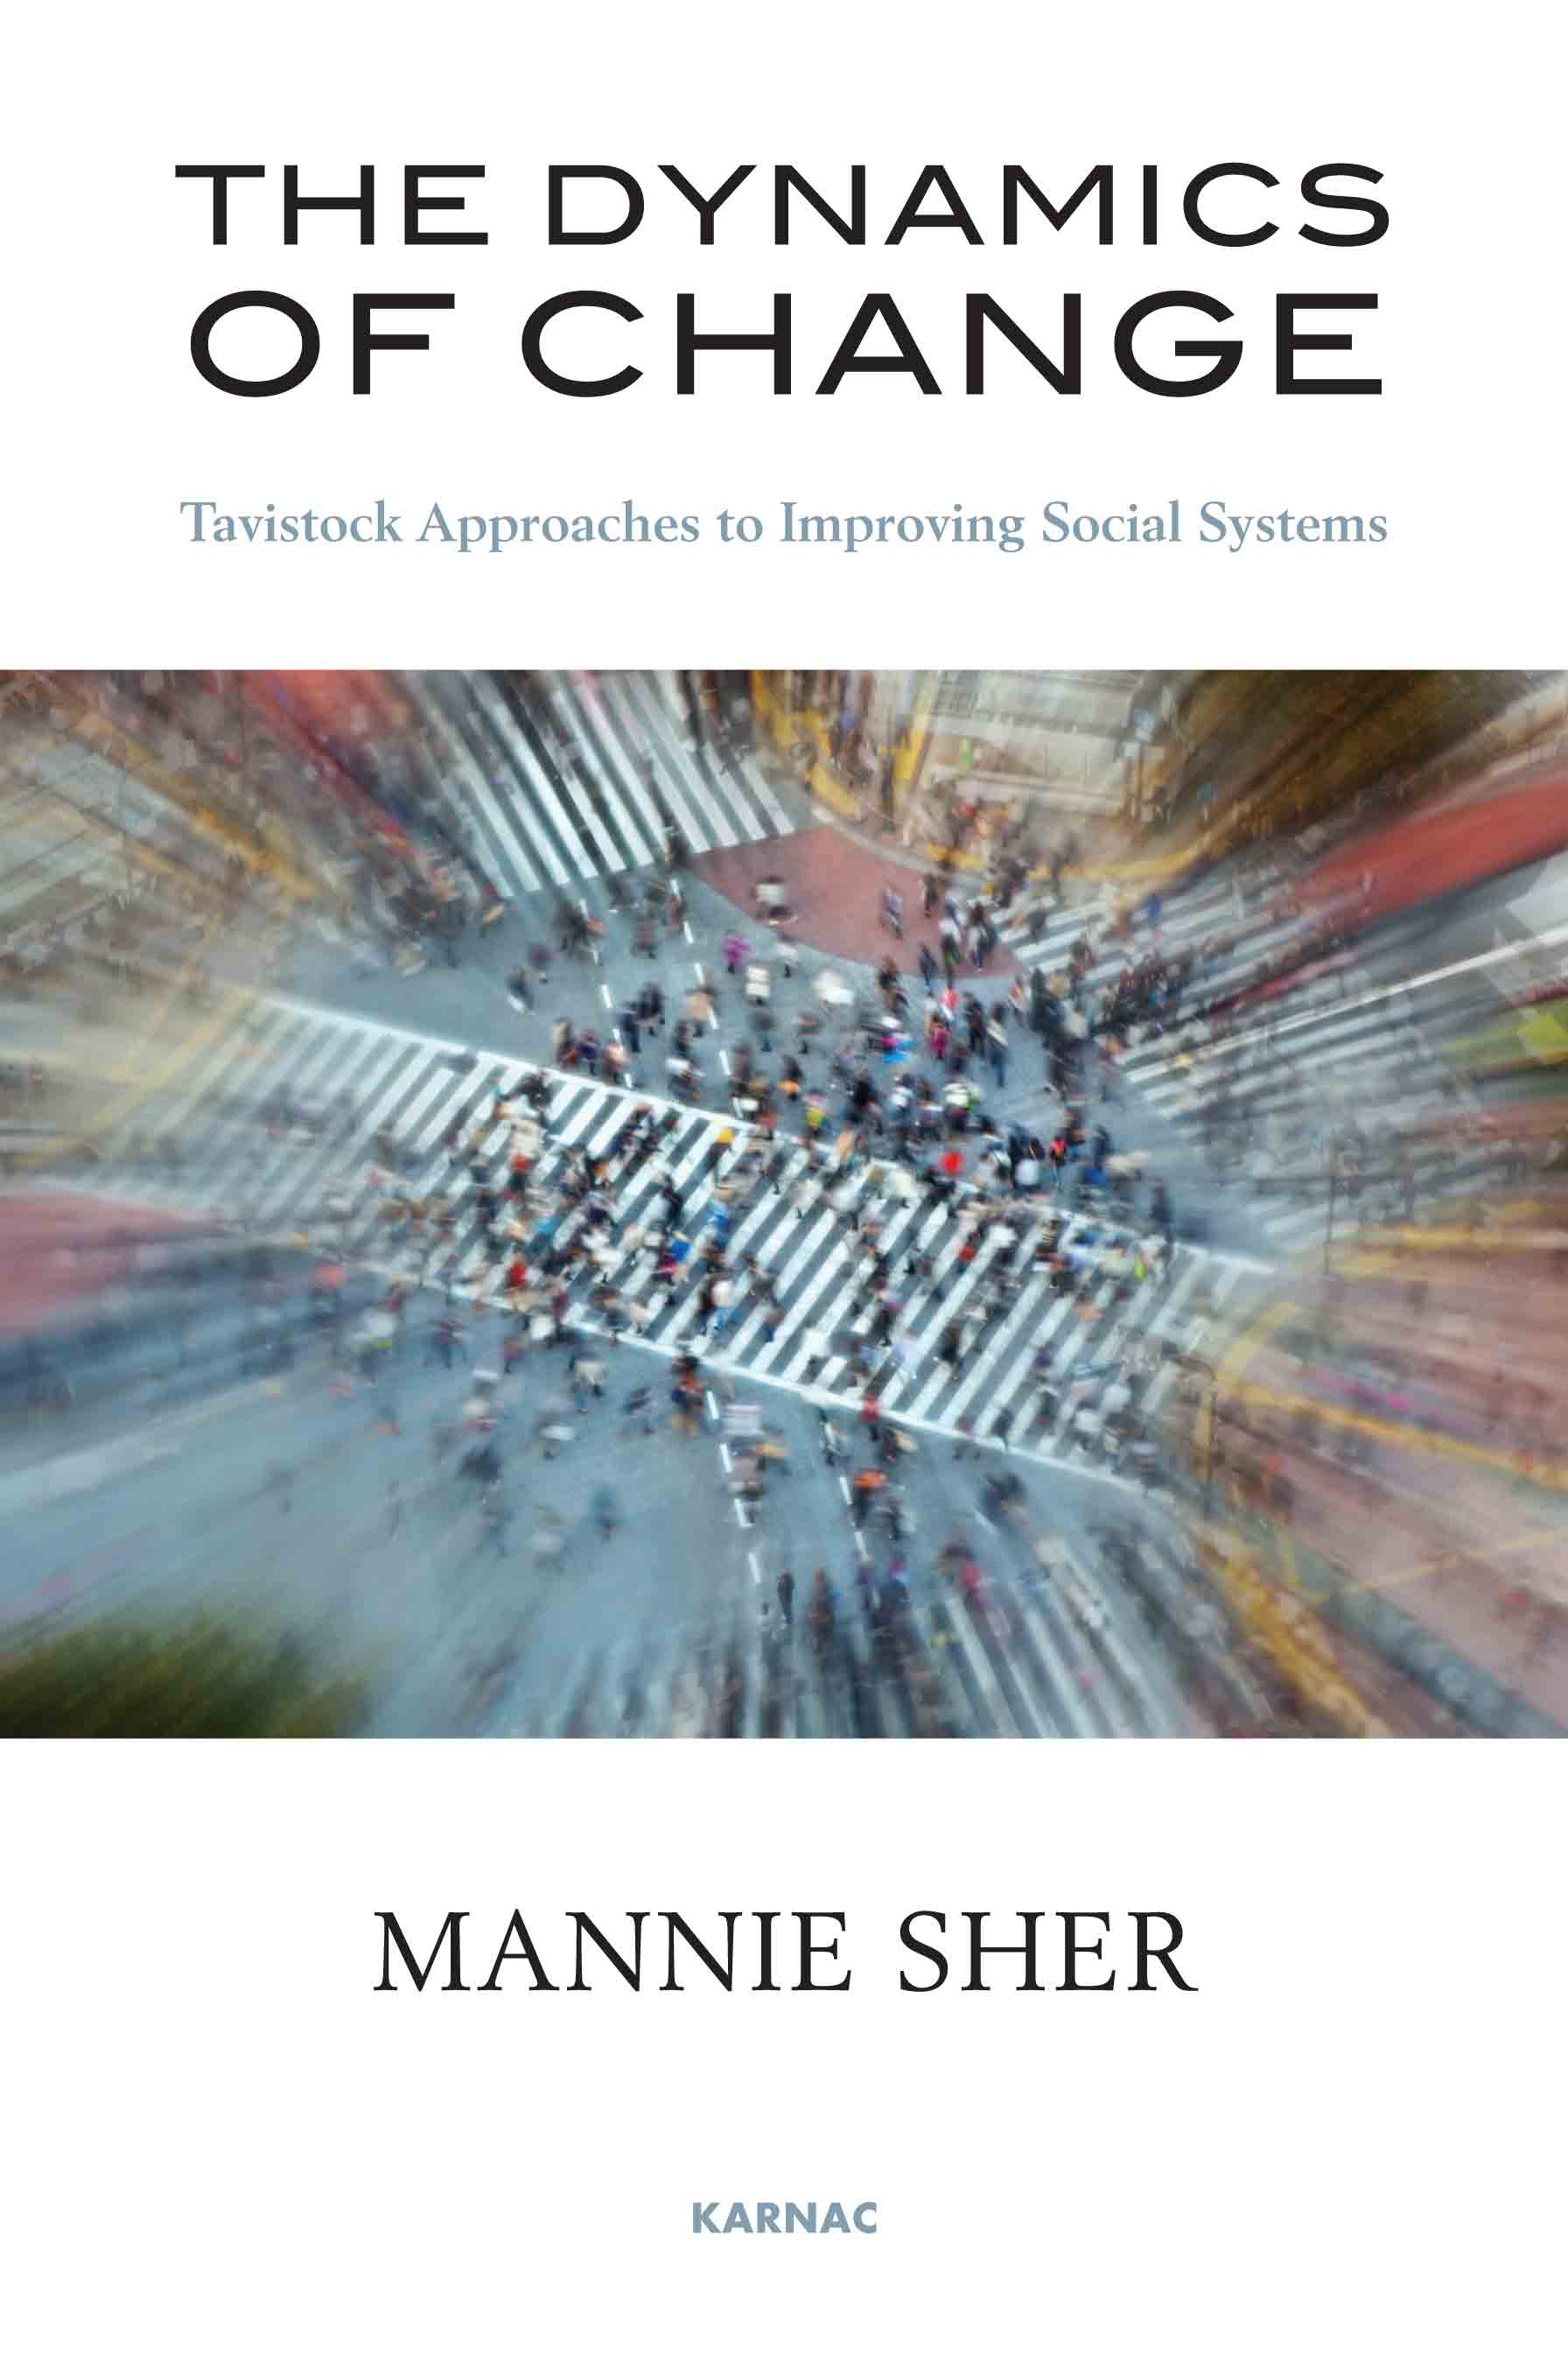 The Dynamics of Change: Tavistock Approaches to Improving Social Systems